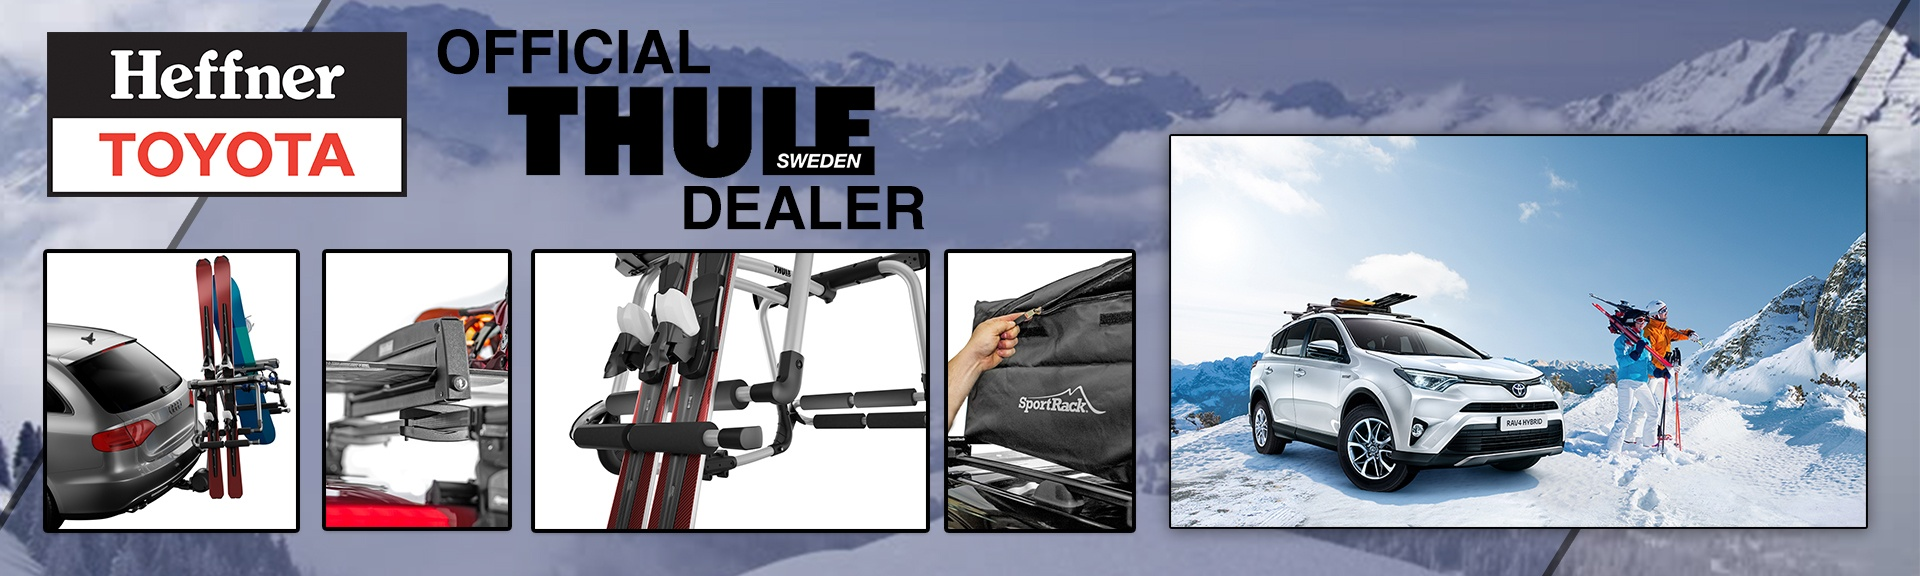 Heffner Toyota is an Official Thule Dealer.